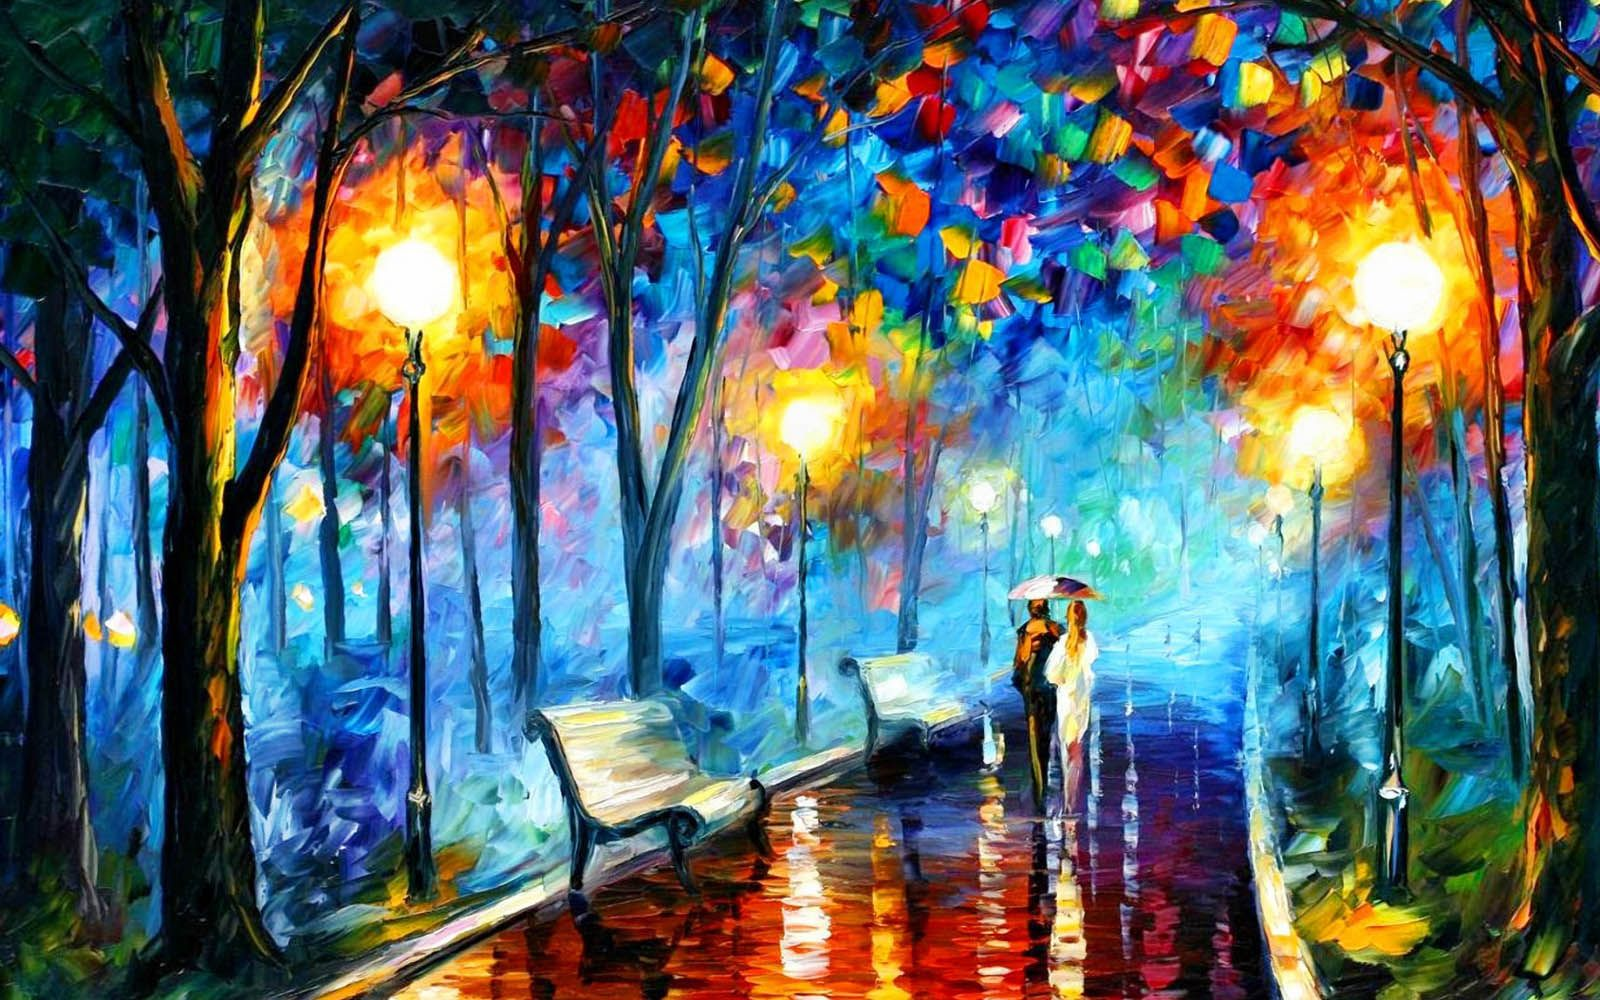 Abstract Paintings Wallpapers Farben Und Tapeten Malen